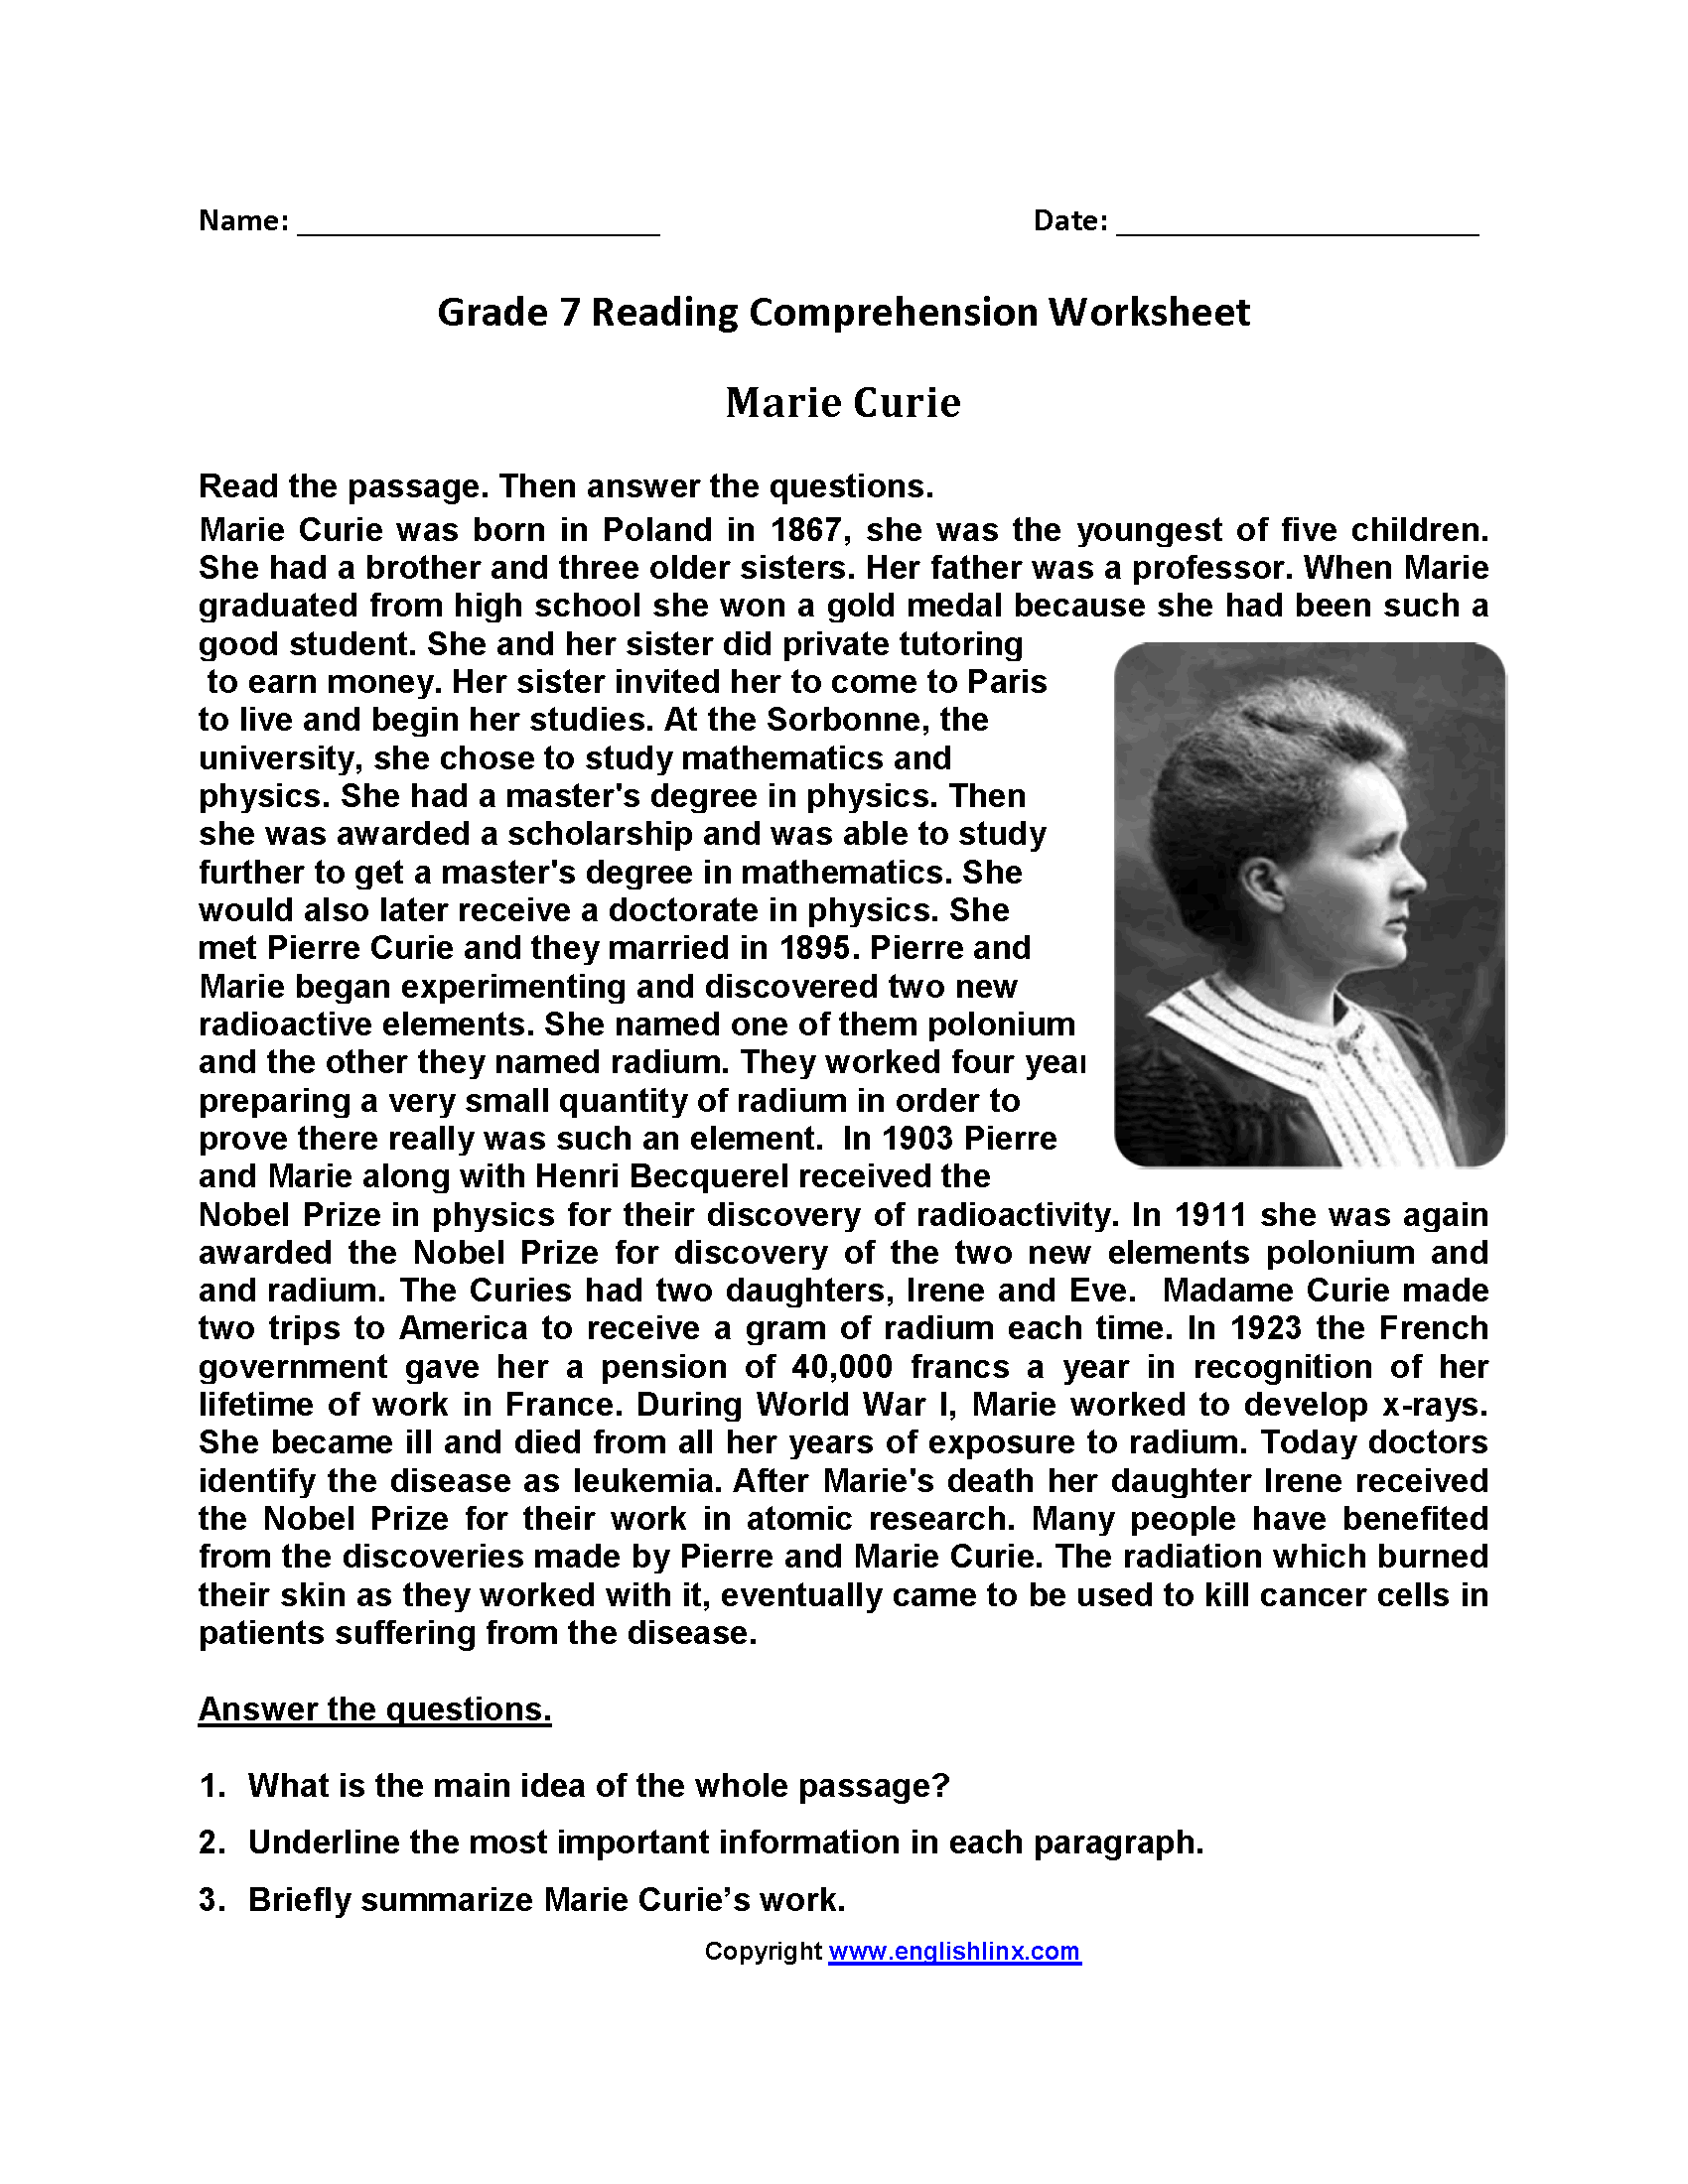 Marie Curie<br>Seventh Grade Reading Worksheets